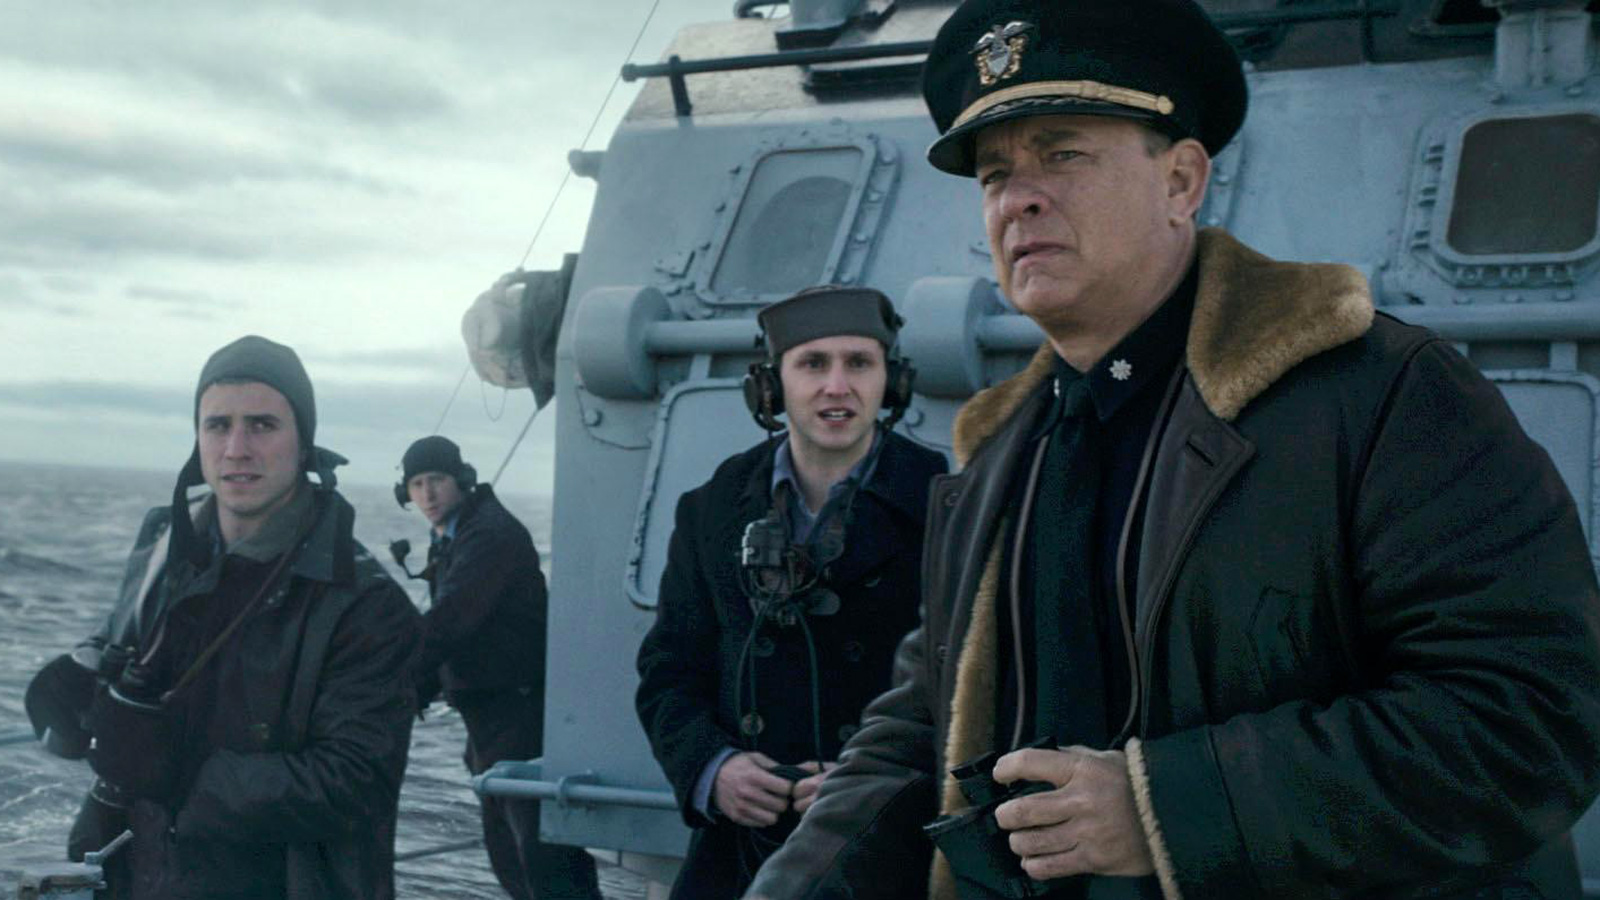 Tom Hanks WWII movie 'Greyhound' will premiere on Apple TV+ | Engadget